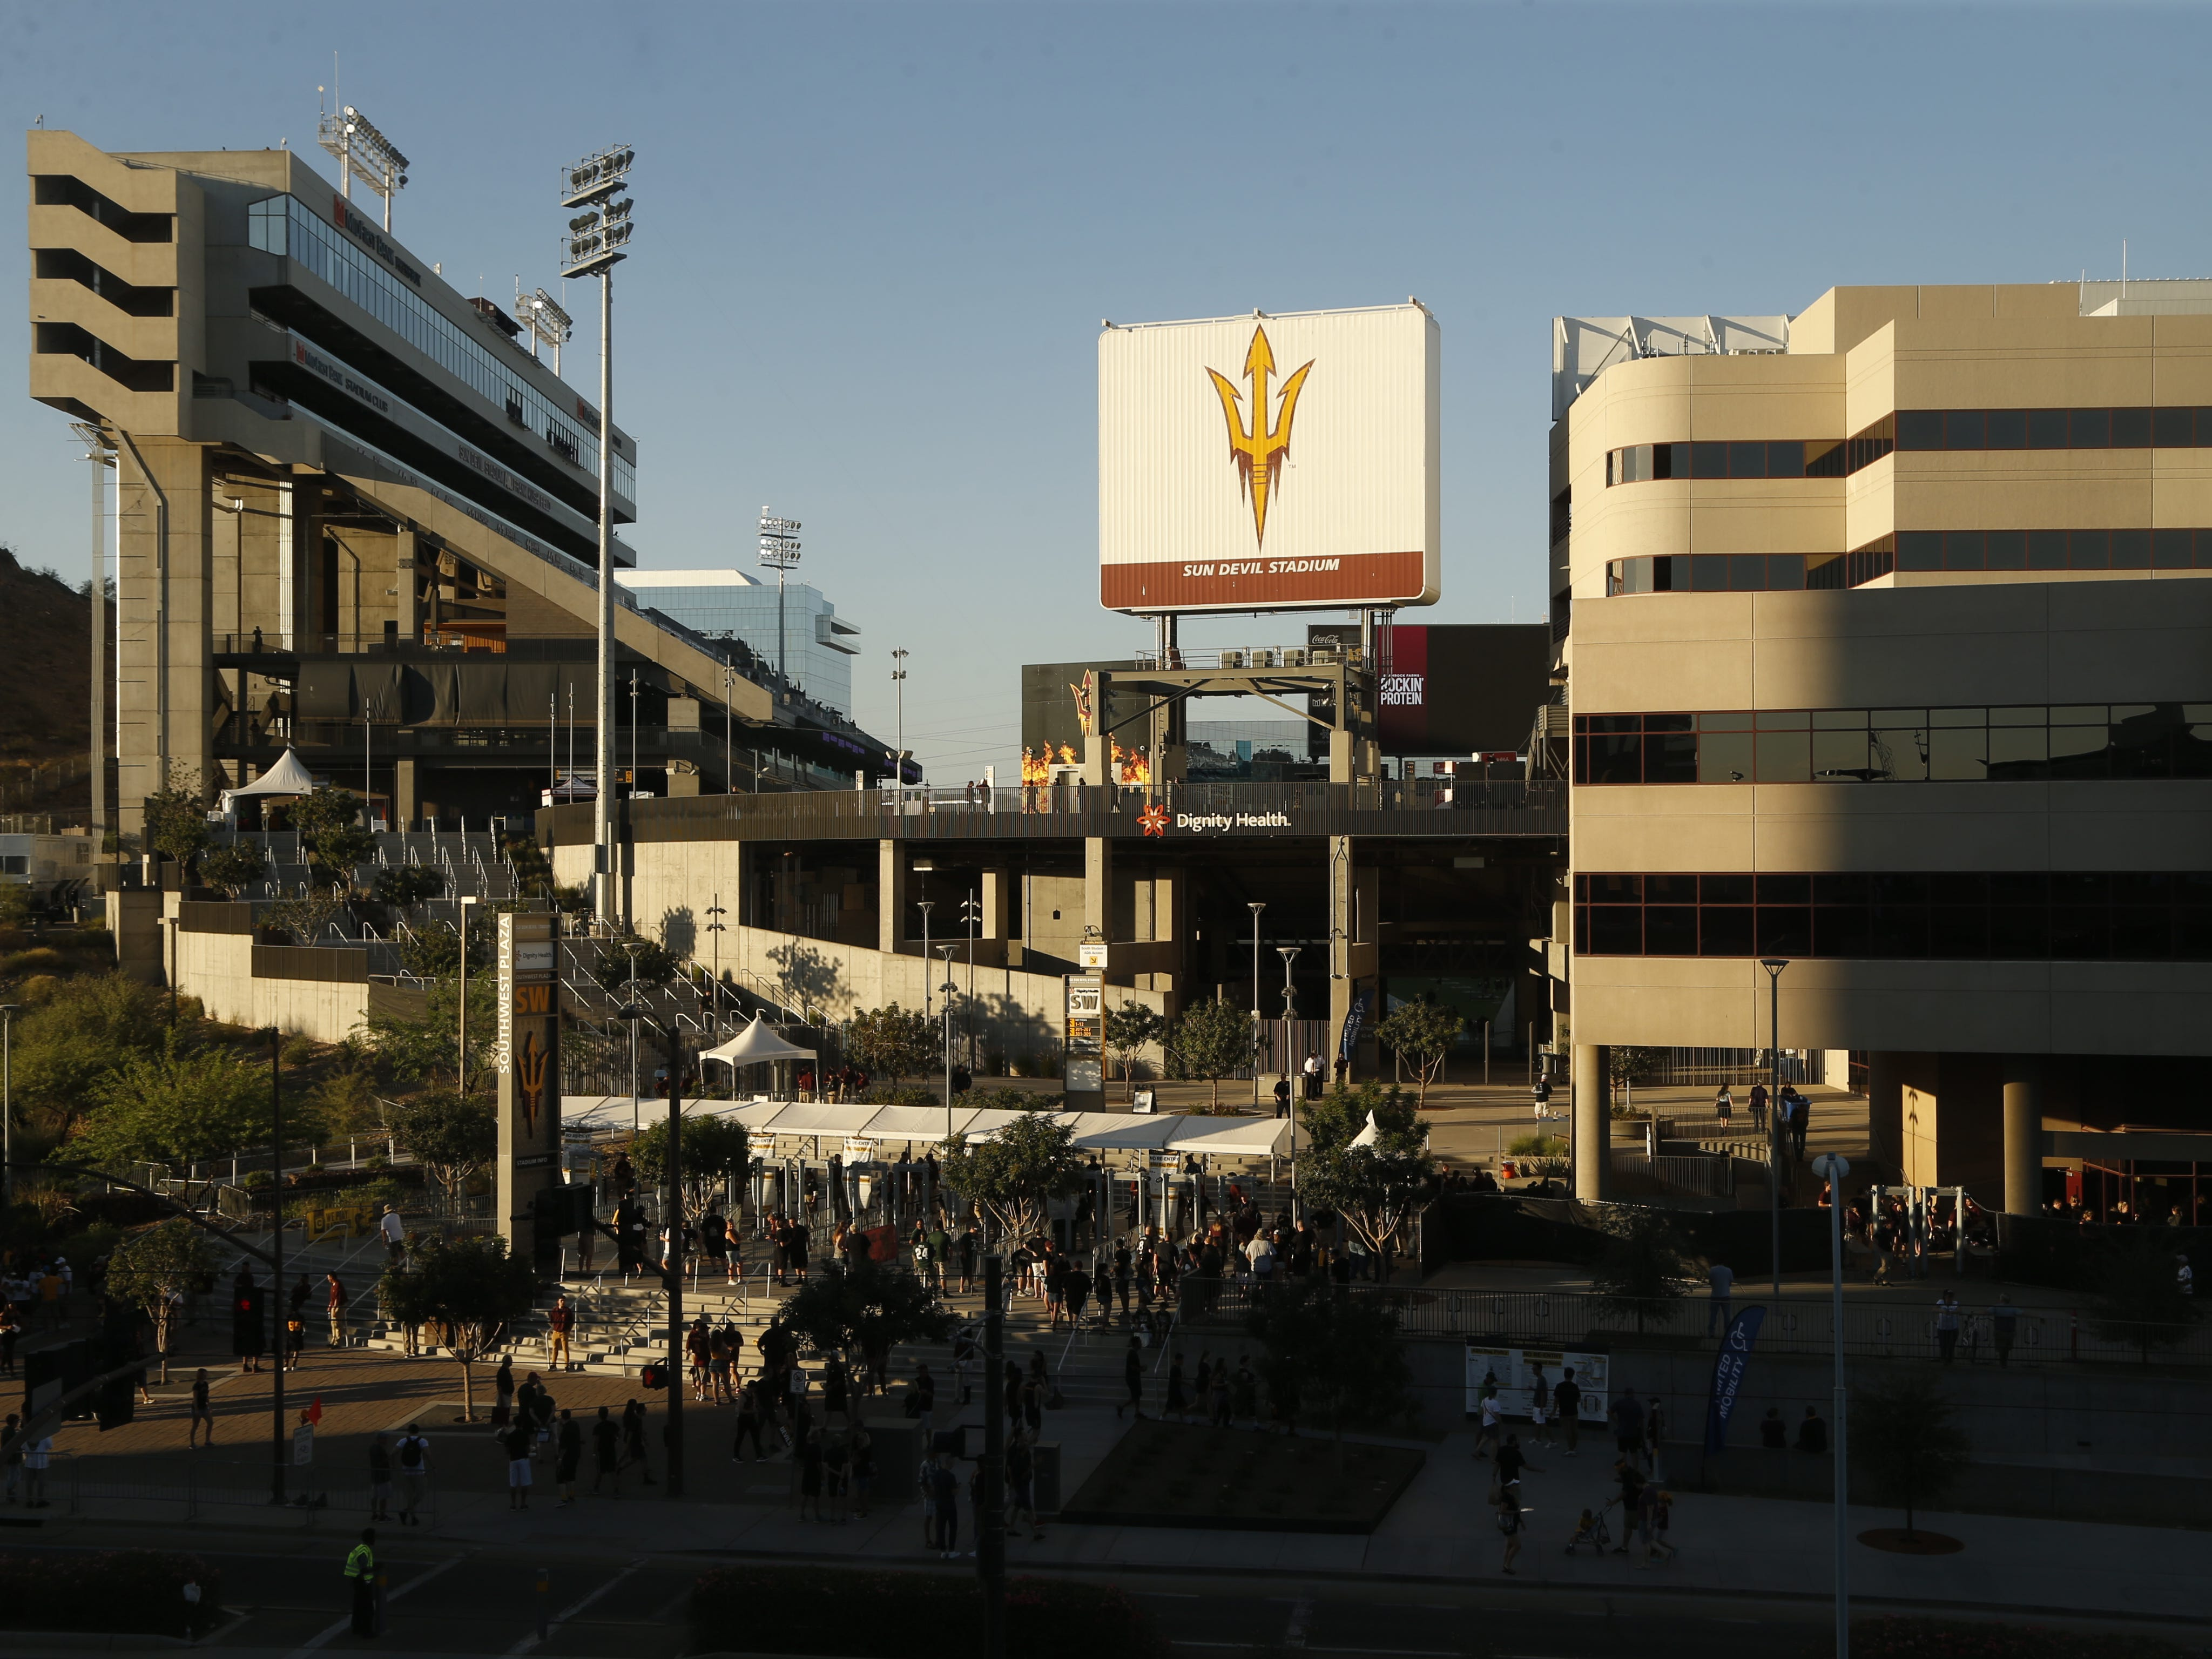 Fans arrive as the sun sets before an ASU game against Michigan State at Sun Devil Stadium in Tempe, Ariz. on Sept. 8, 2018.